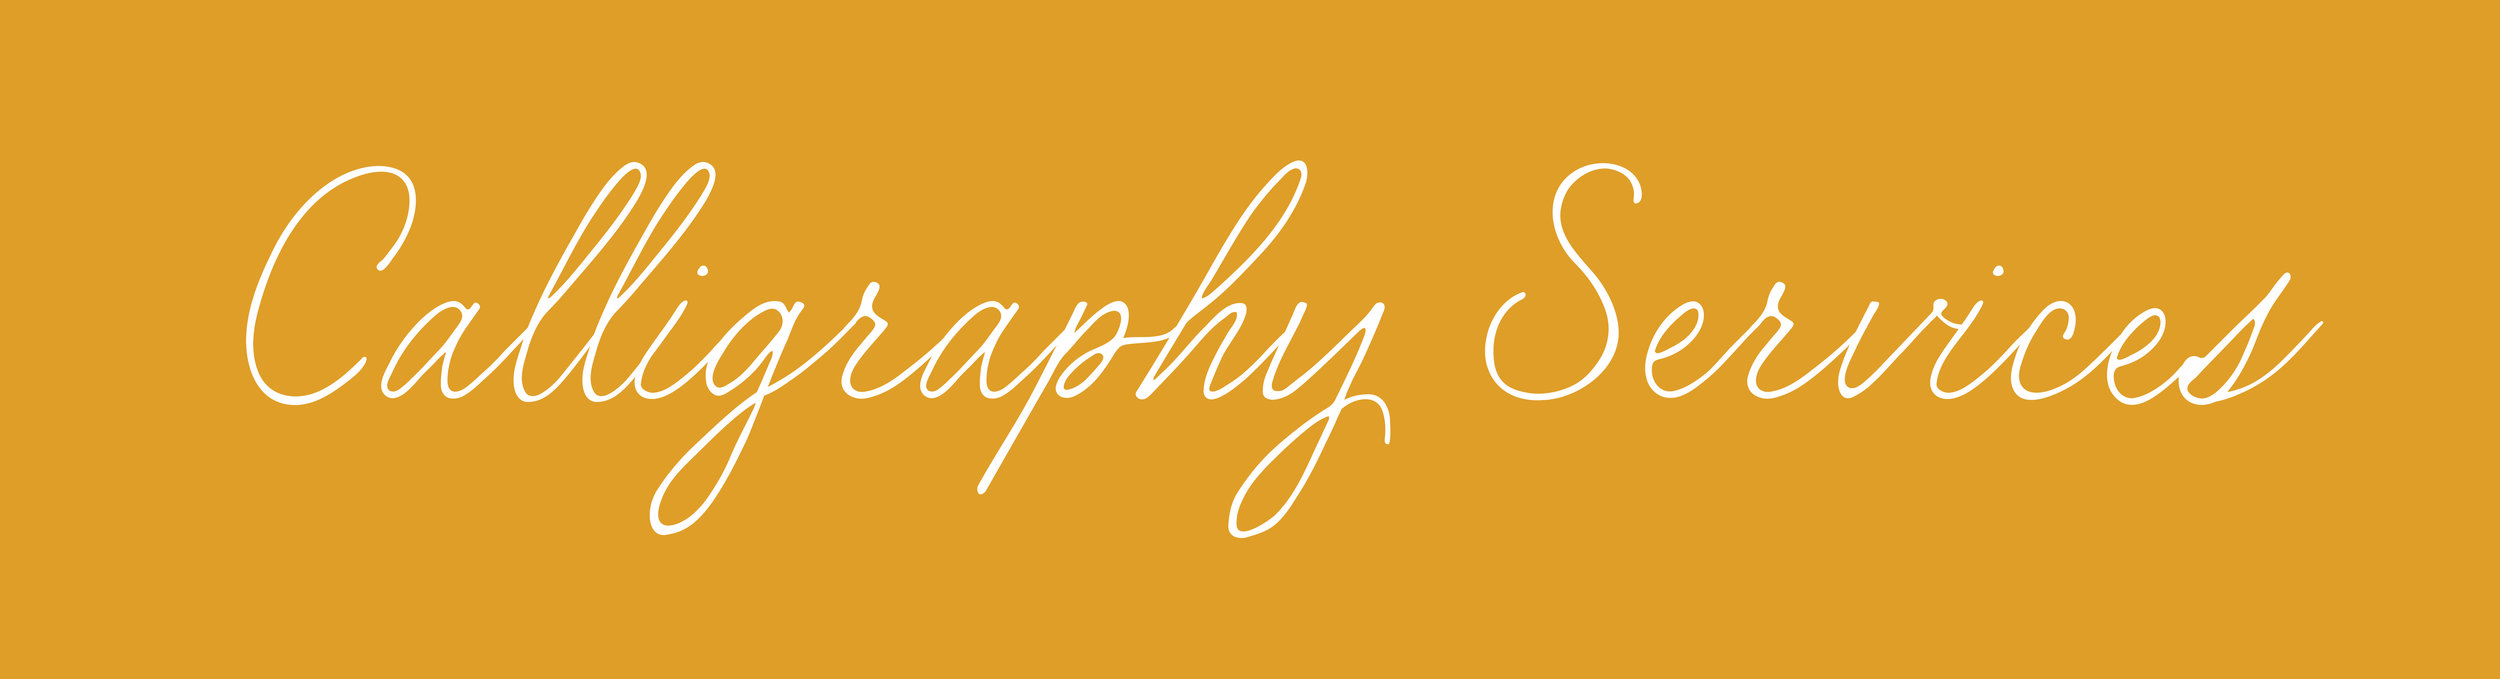 bright yellow background with calligraphy in white handlettered cursive.